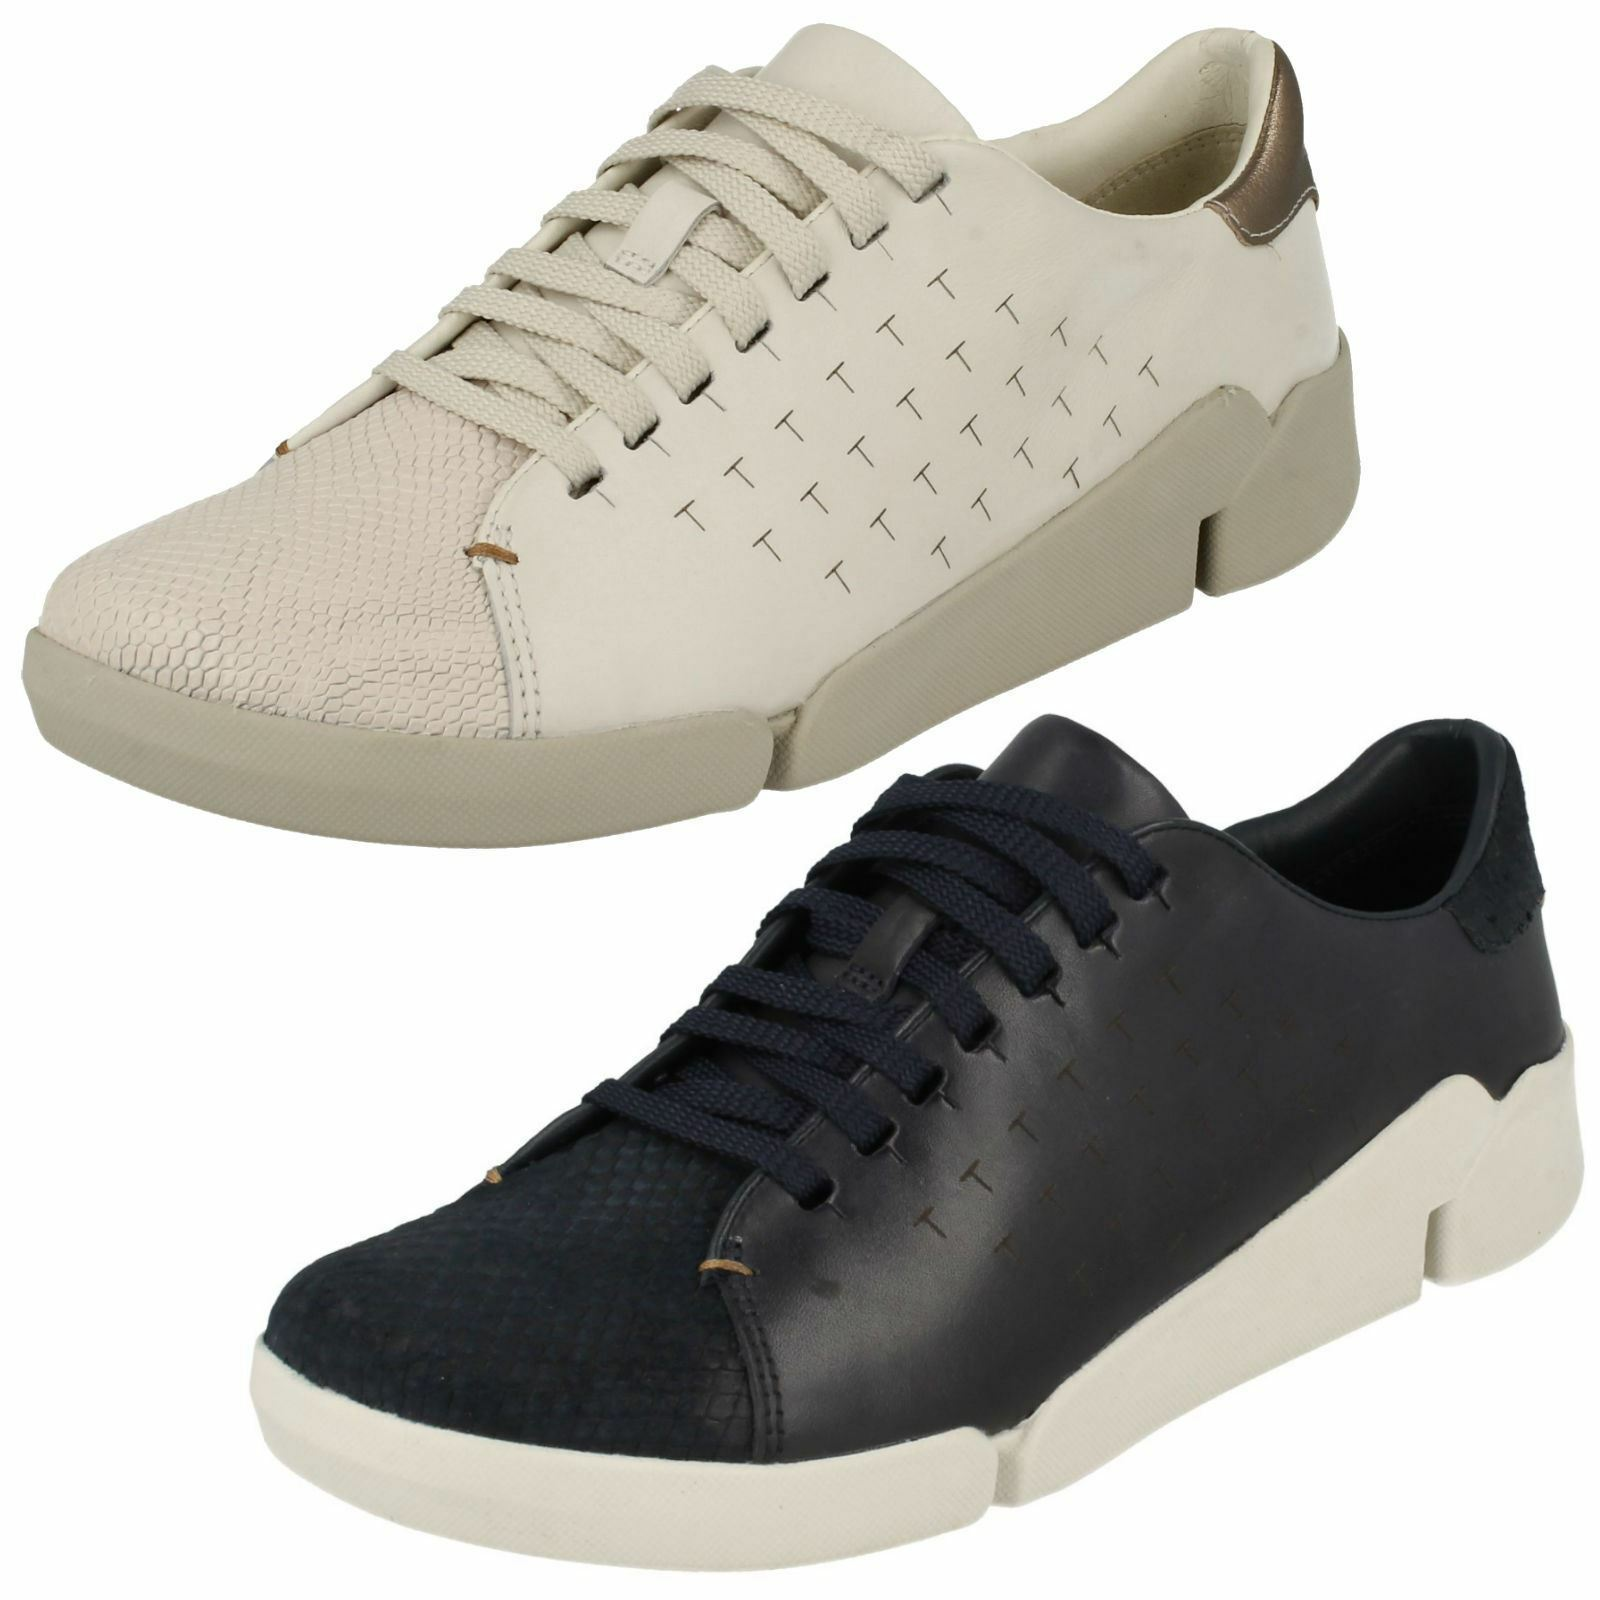 LADIES CLARKS LEATHER LACE UP CASUAL SPORTY OUTDOOR TRAINERS Schuhe TRI ABBY